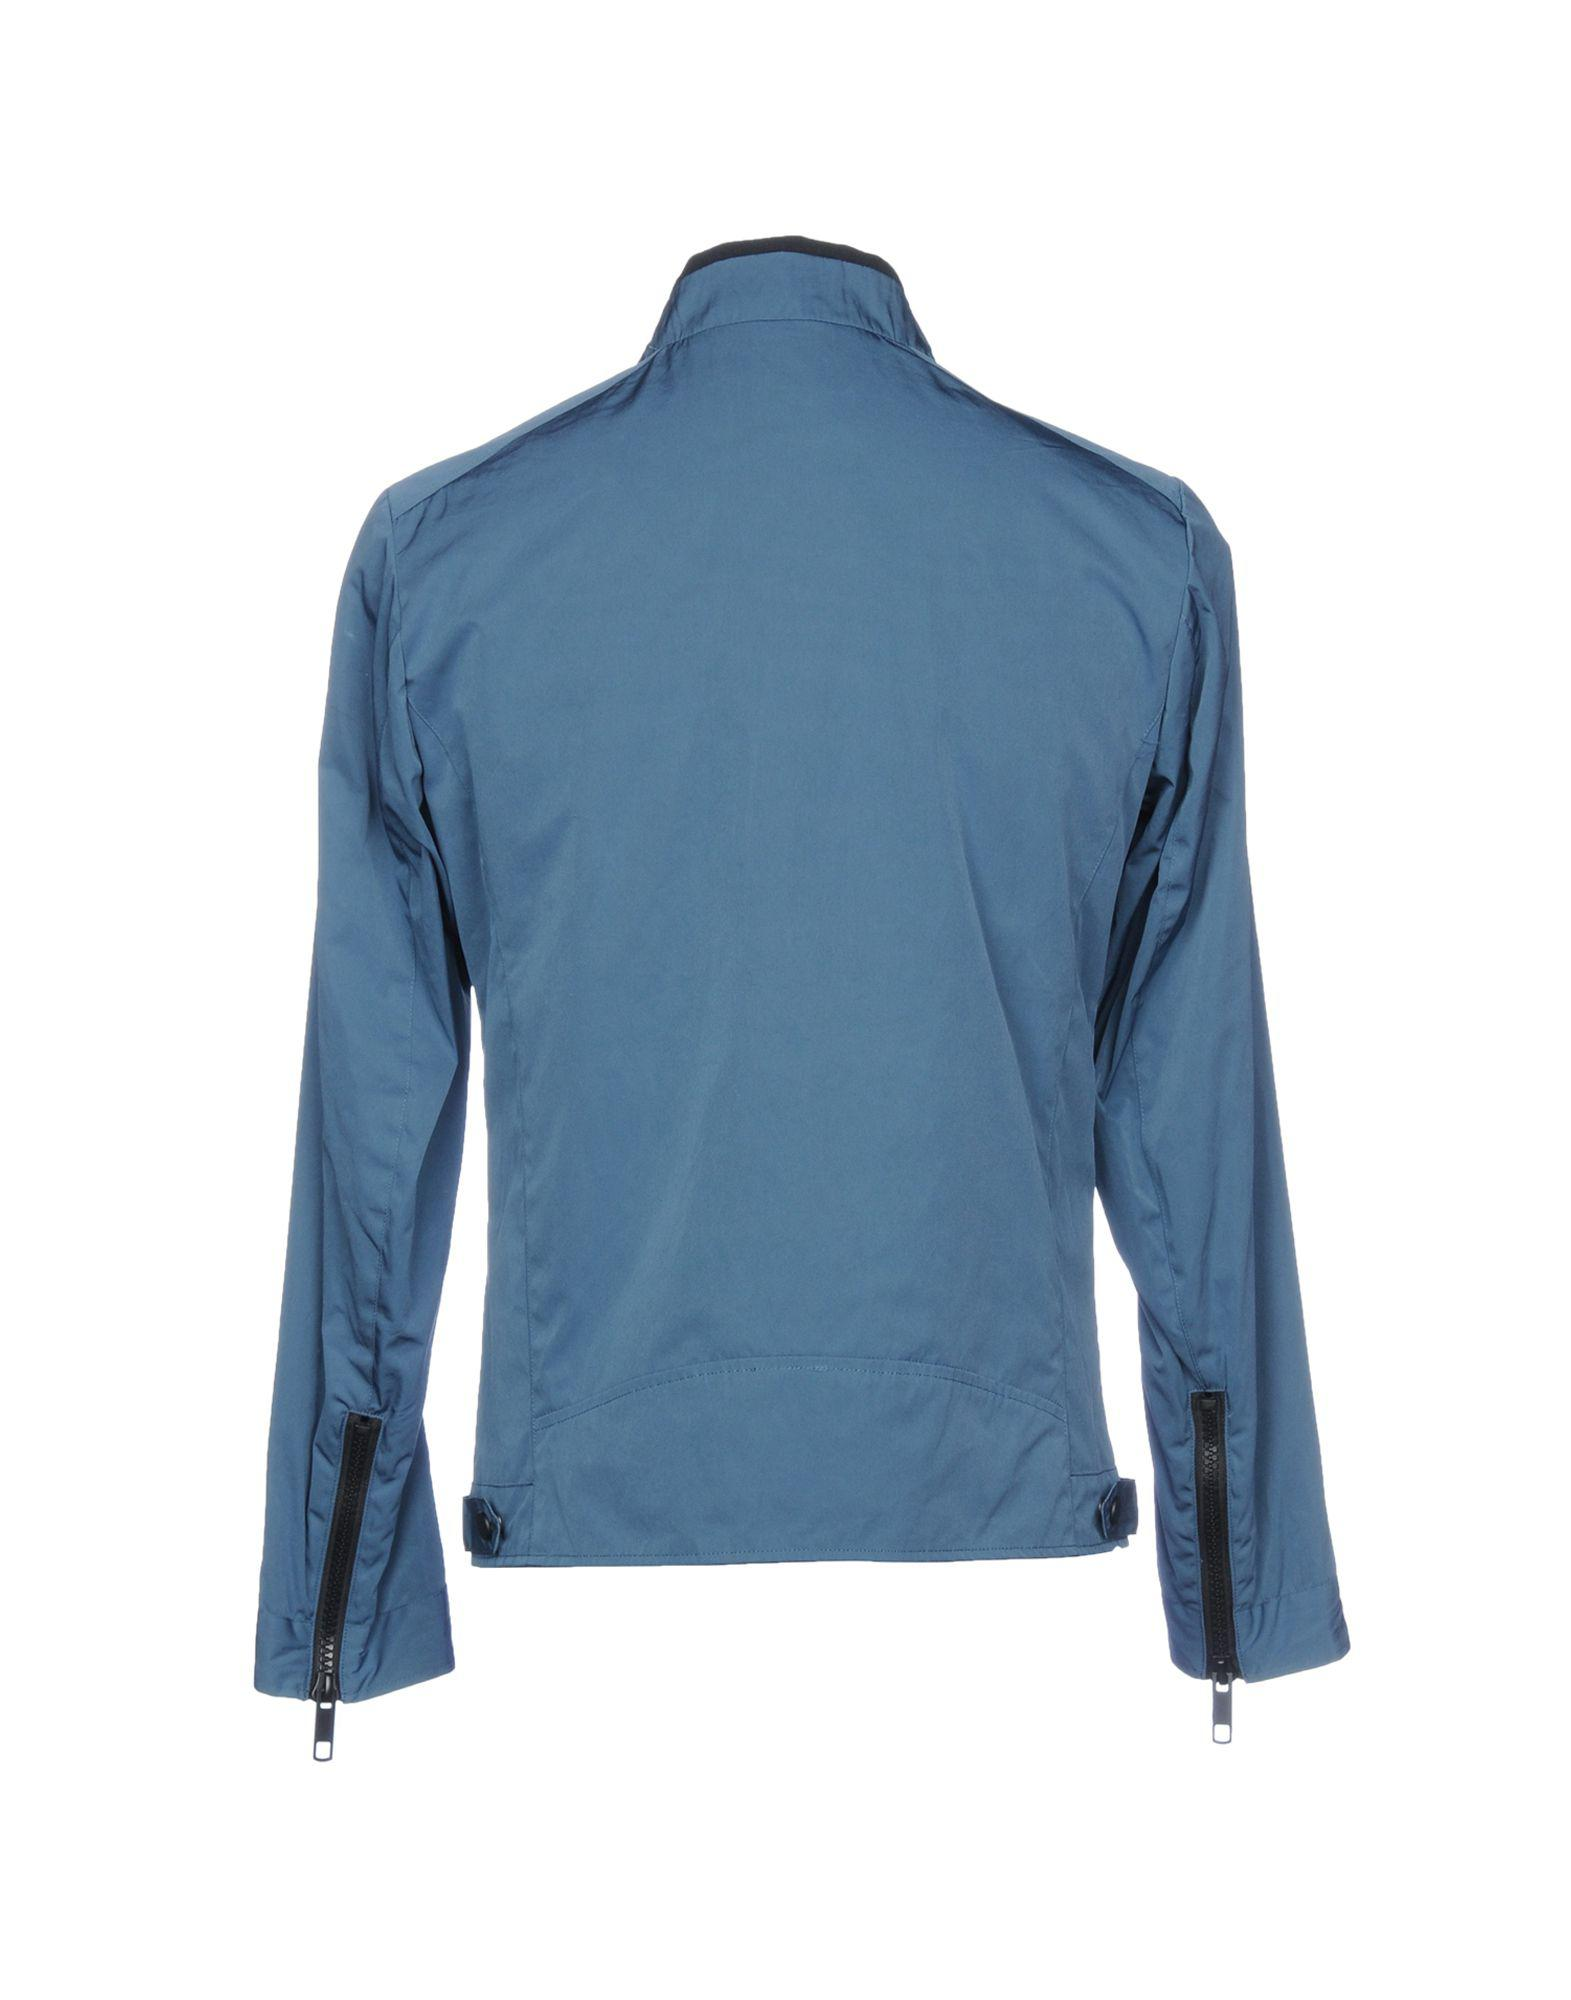 Antony Morato Synthetic Jacket in Pastel Blue (Blue) for Men